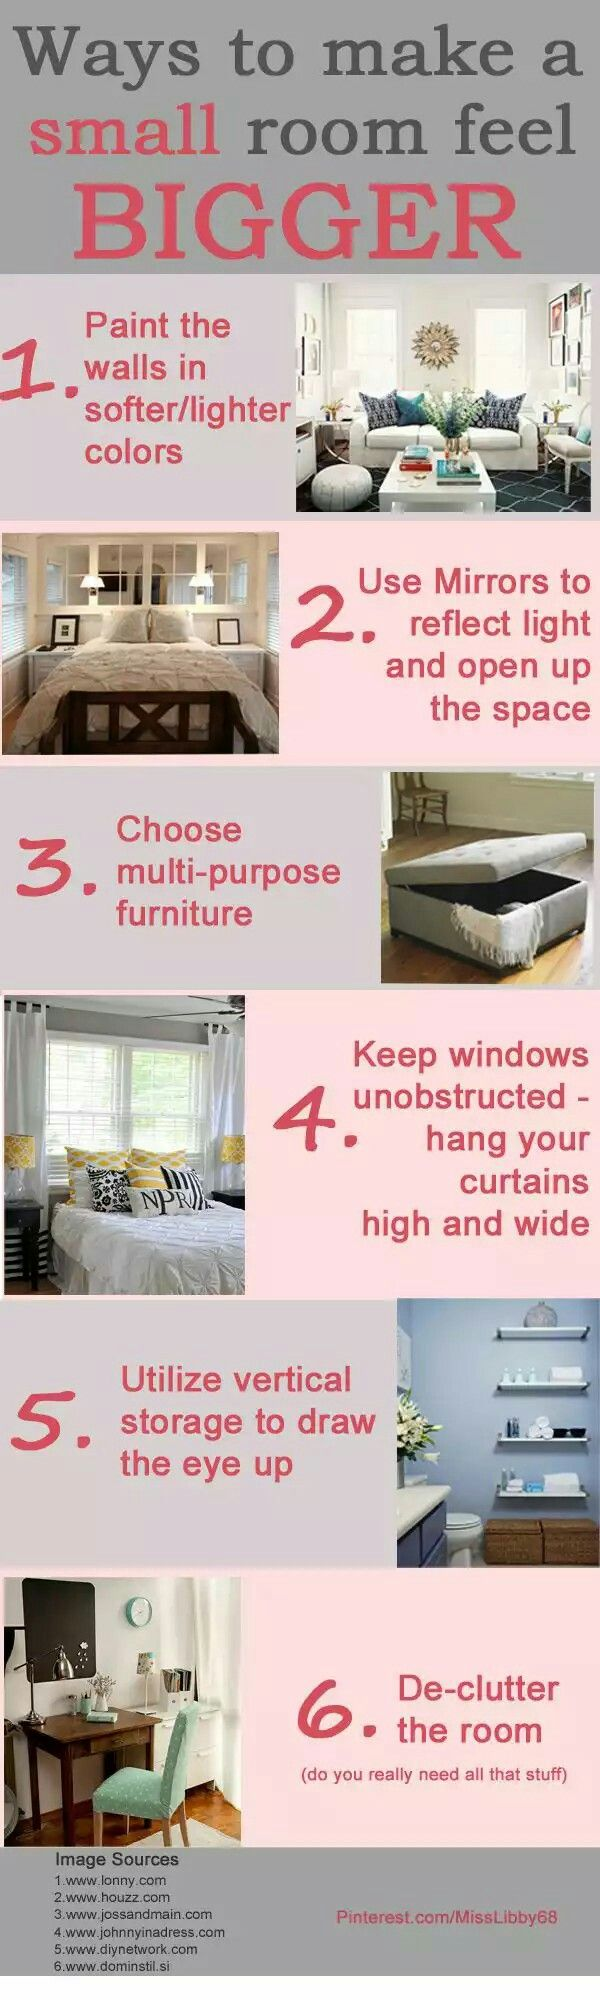 Best 25+ Painting small rooms ideas on Pinterest | Small ...